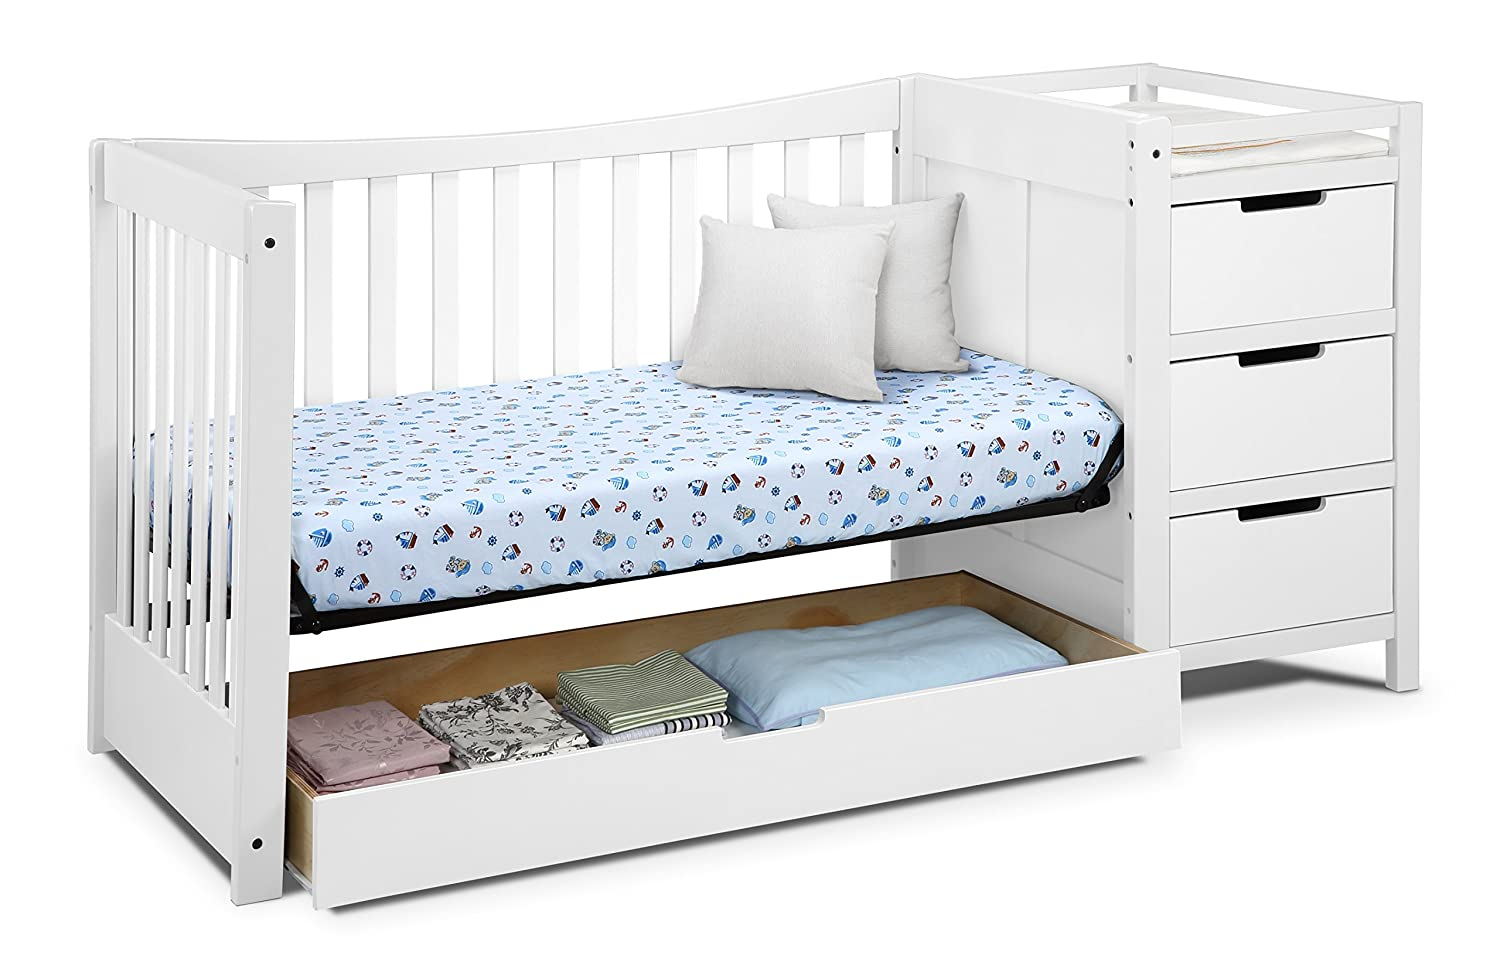 Amazon.com : Graco Remi 4-in-1 Convertible Crib and Changer, White ...